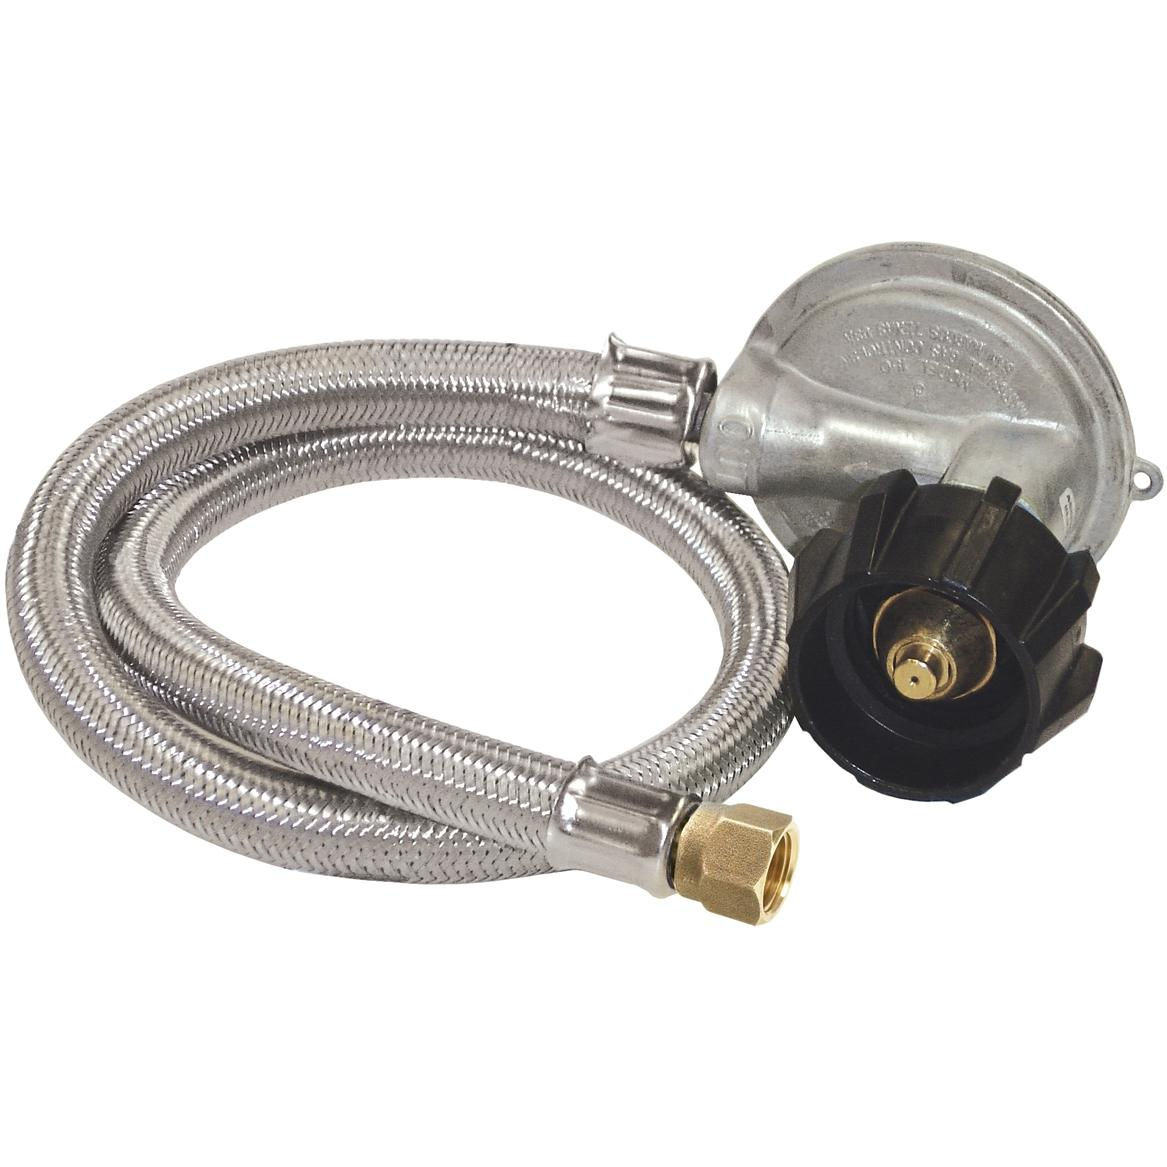 Bayou Classic 36 Inch Pressure Stainless Braided Hose With Low Pressure Regulator